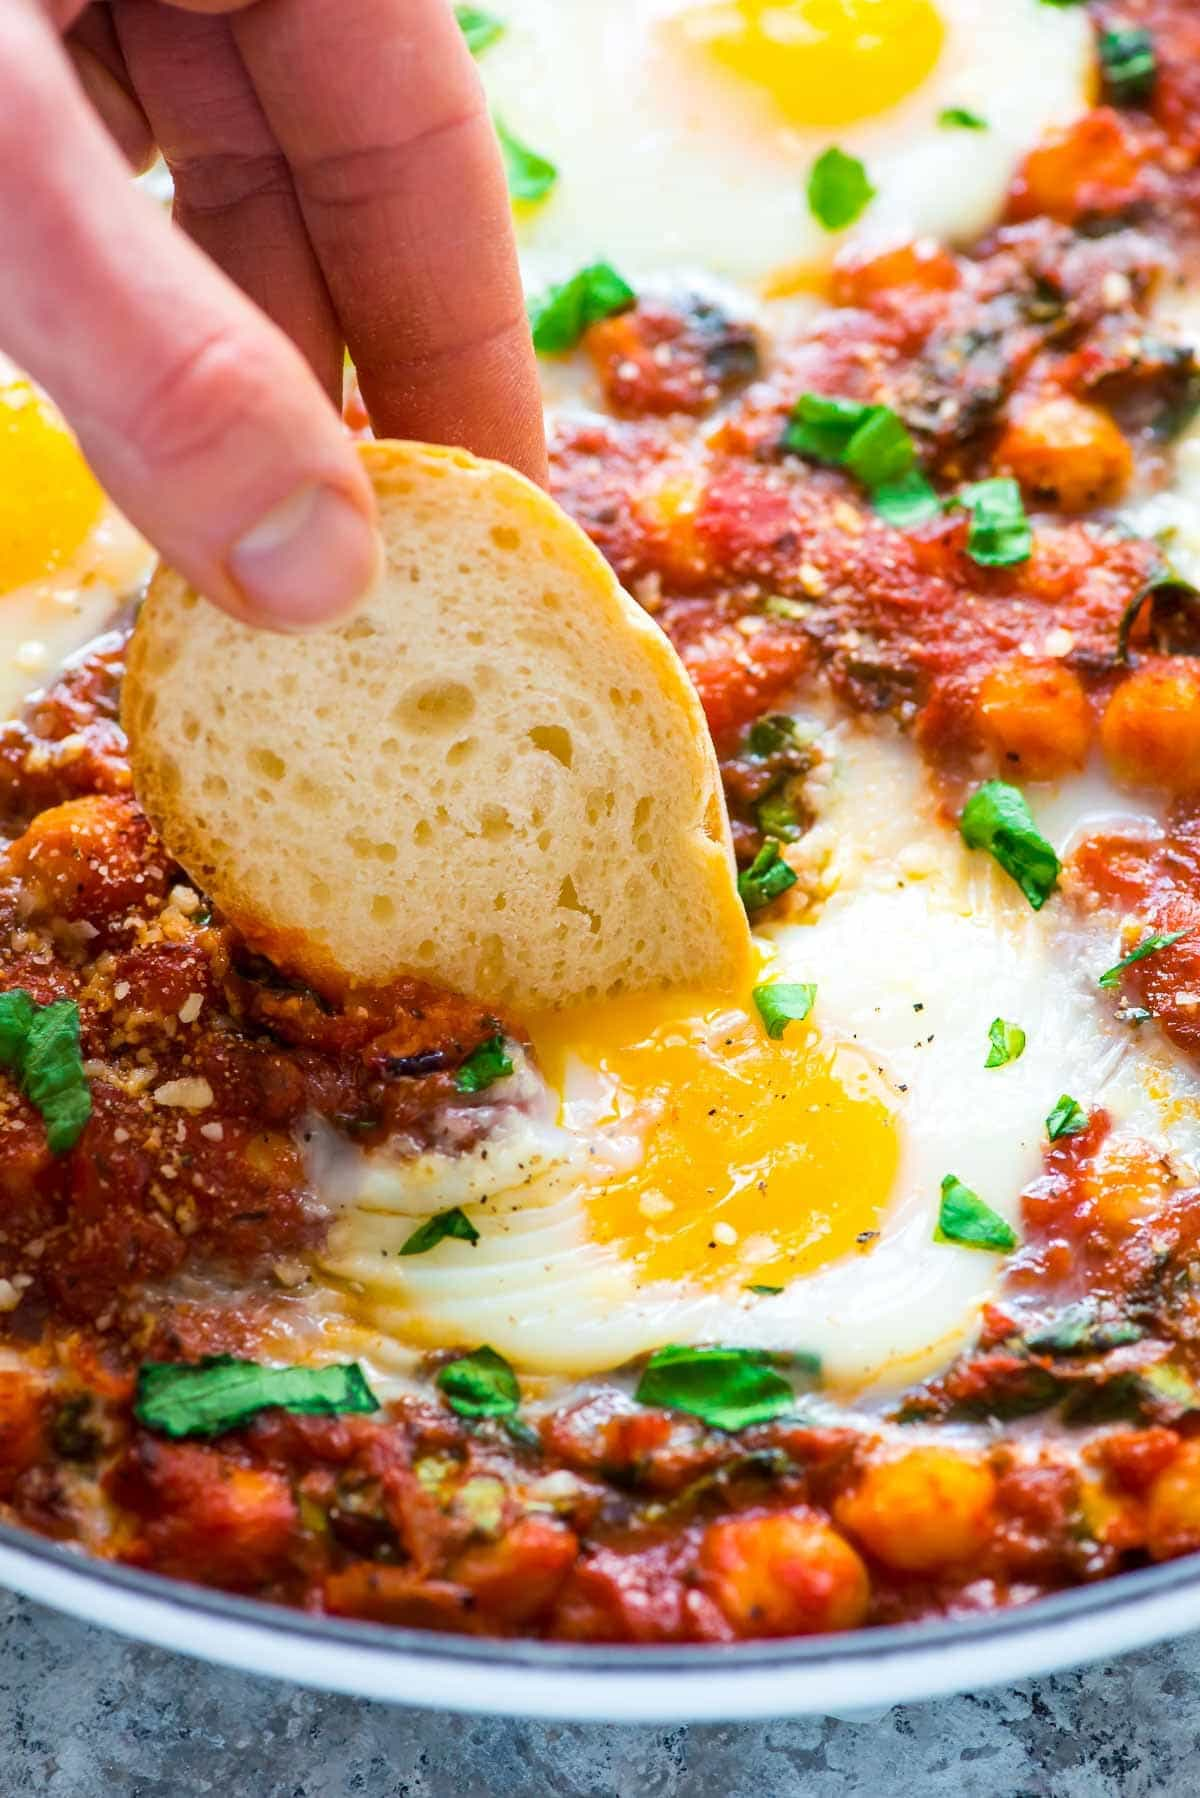 Italian Baked Eggs in Purgatory – Eggs simmered in a garlic tomato sauce with chickpeas, spinach, basil, and Parmesan. Easy, healthy, budget-friendly, and DELICIOUS! Recipe at wellplated.com   @wellplated